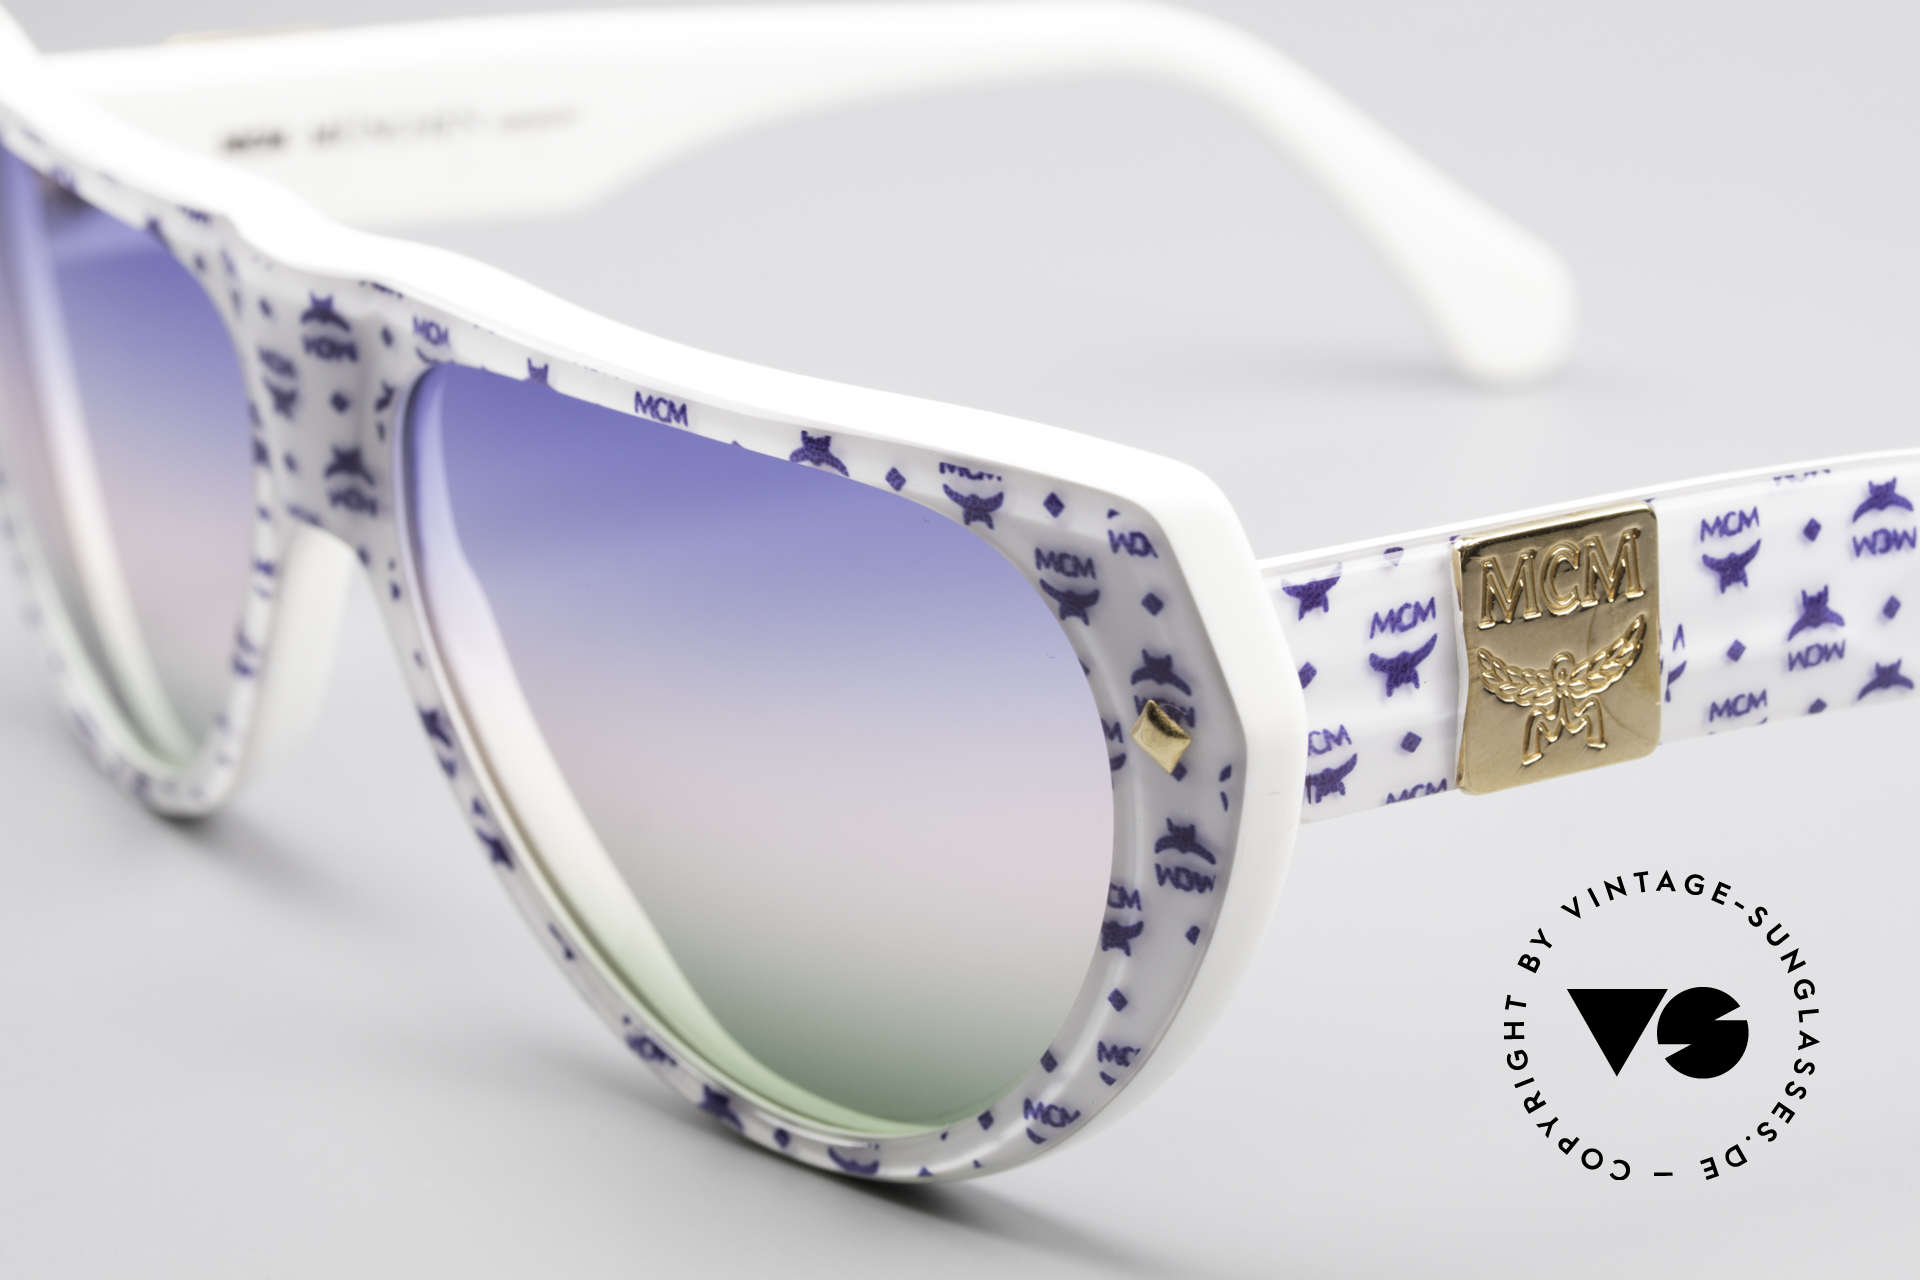 MCM München A1 Hip Hop Designer Sunglasses, pompous, striking & extravagant = typically MCM, Made for Men and Women